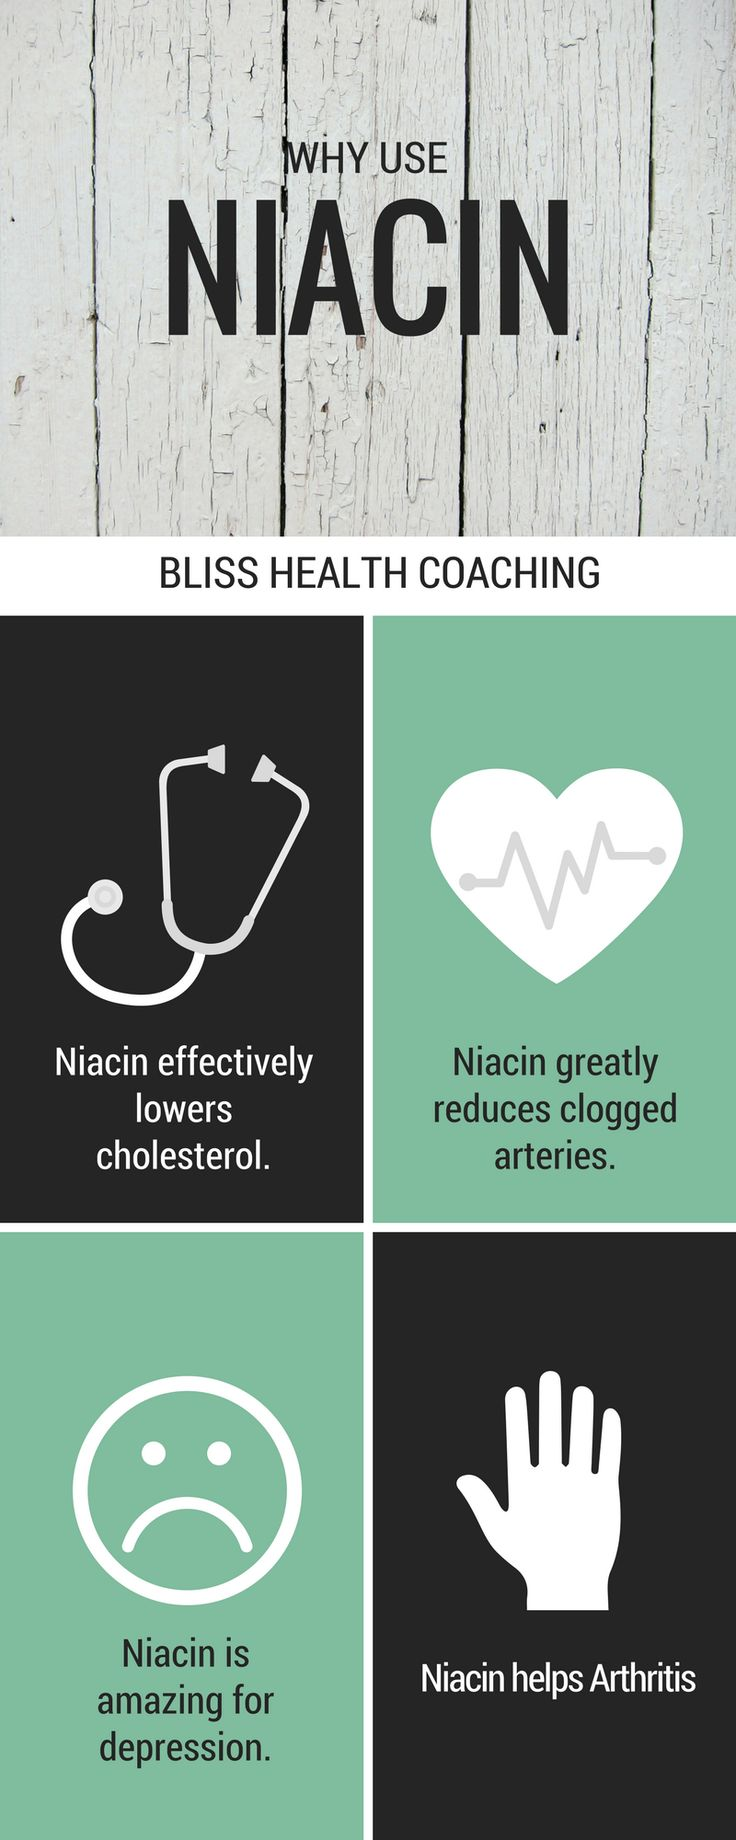 Supplementing with niacin can bring many health benefits including reduced arthritis pain, help with clogged arteries and help with depression.